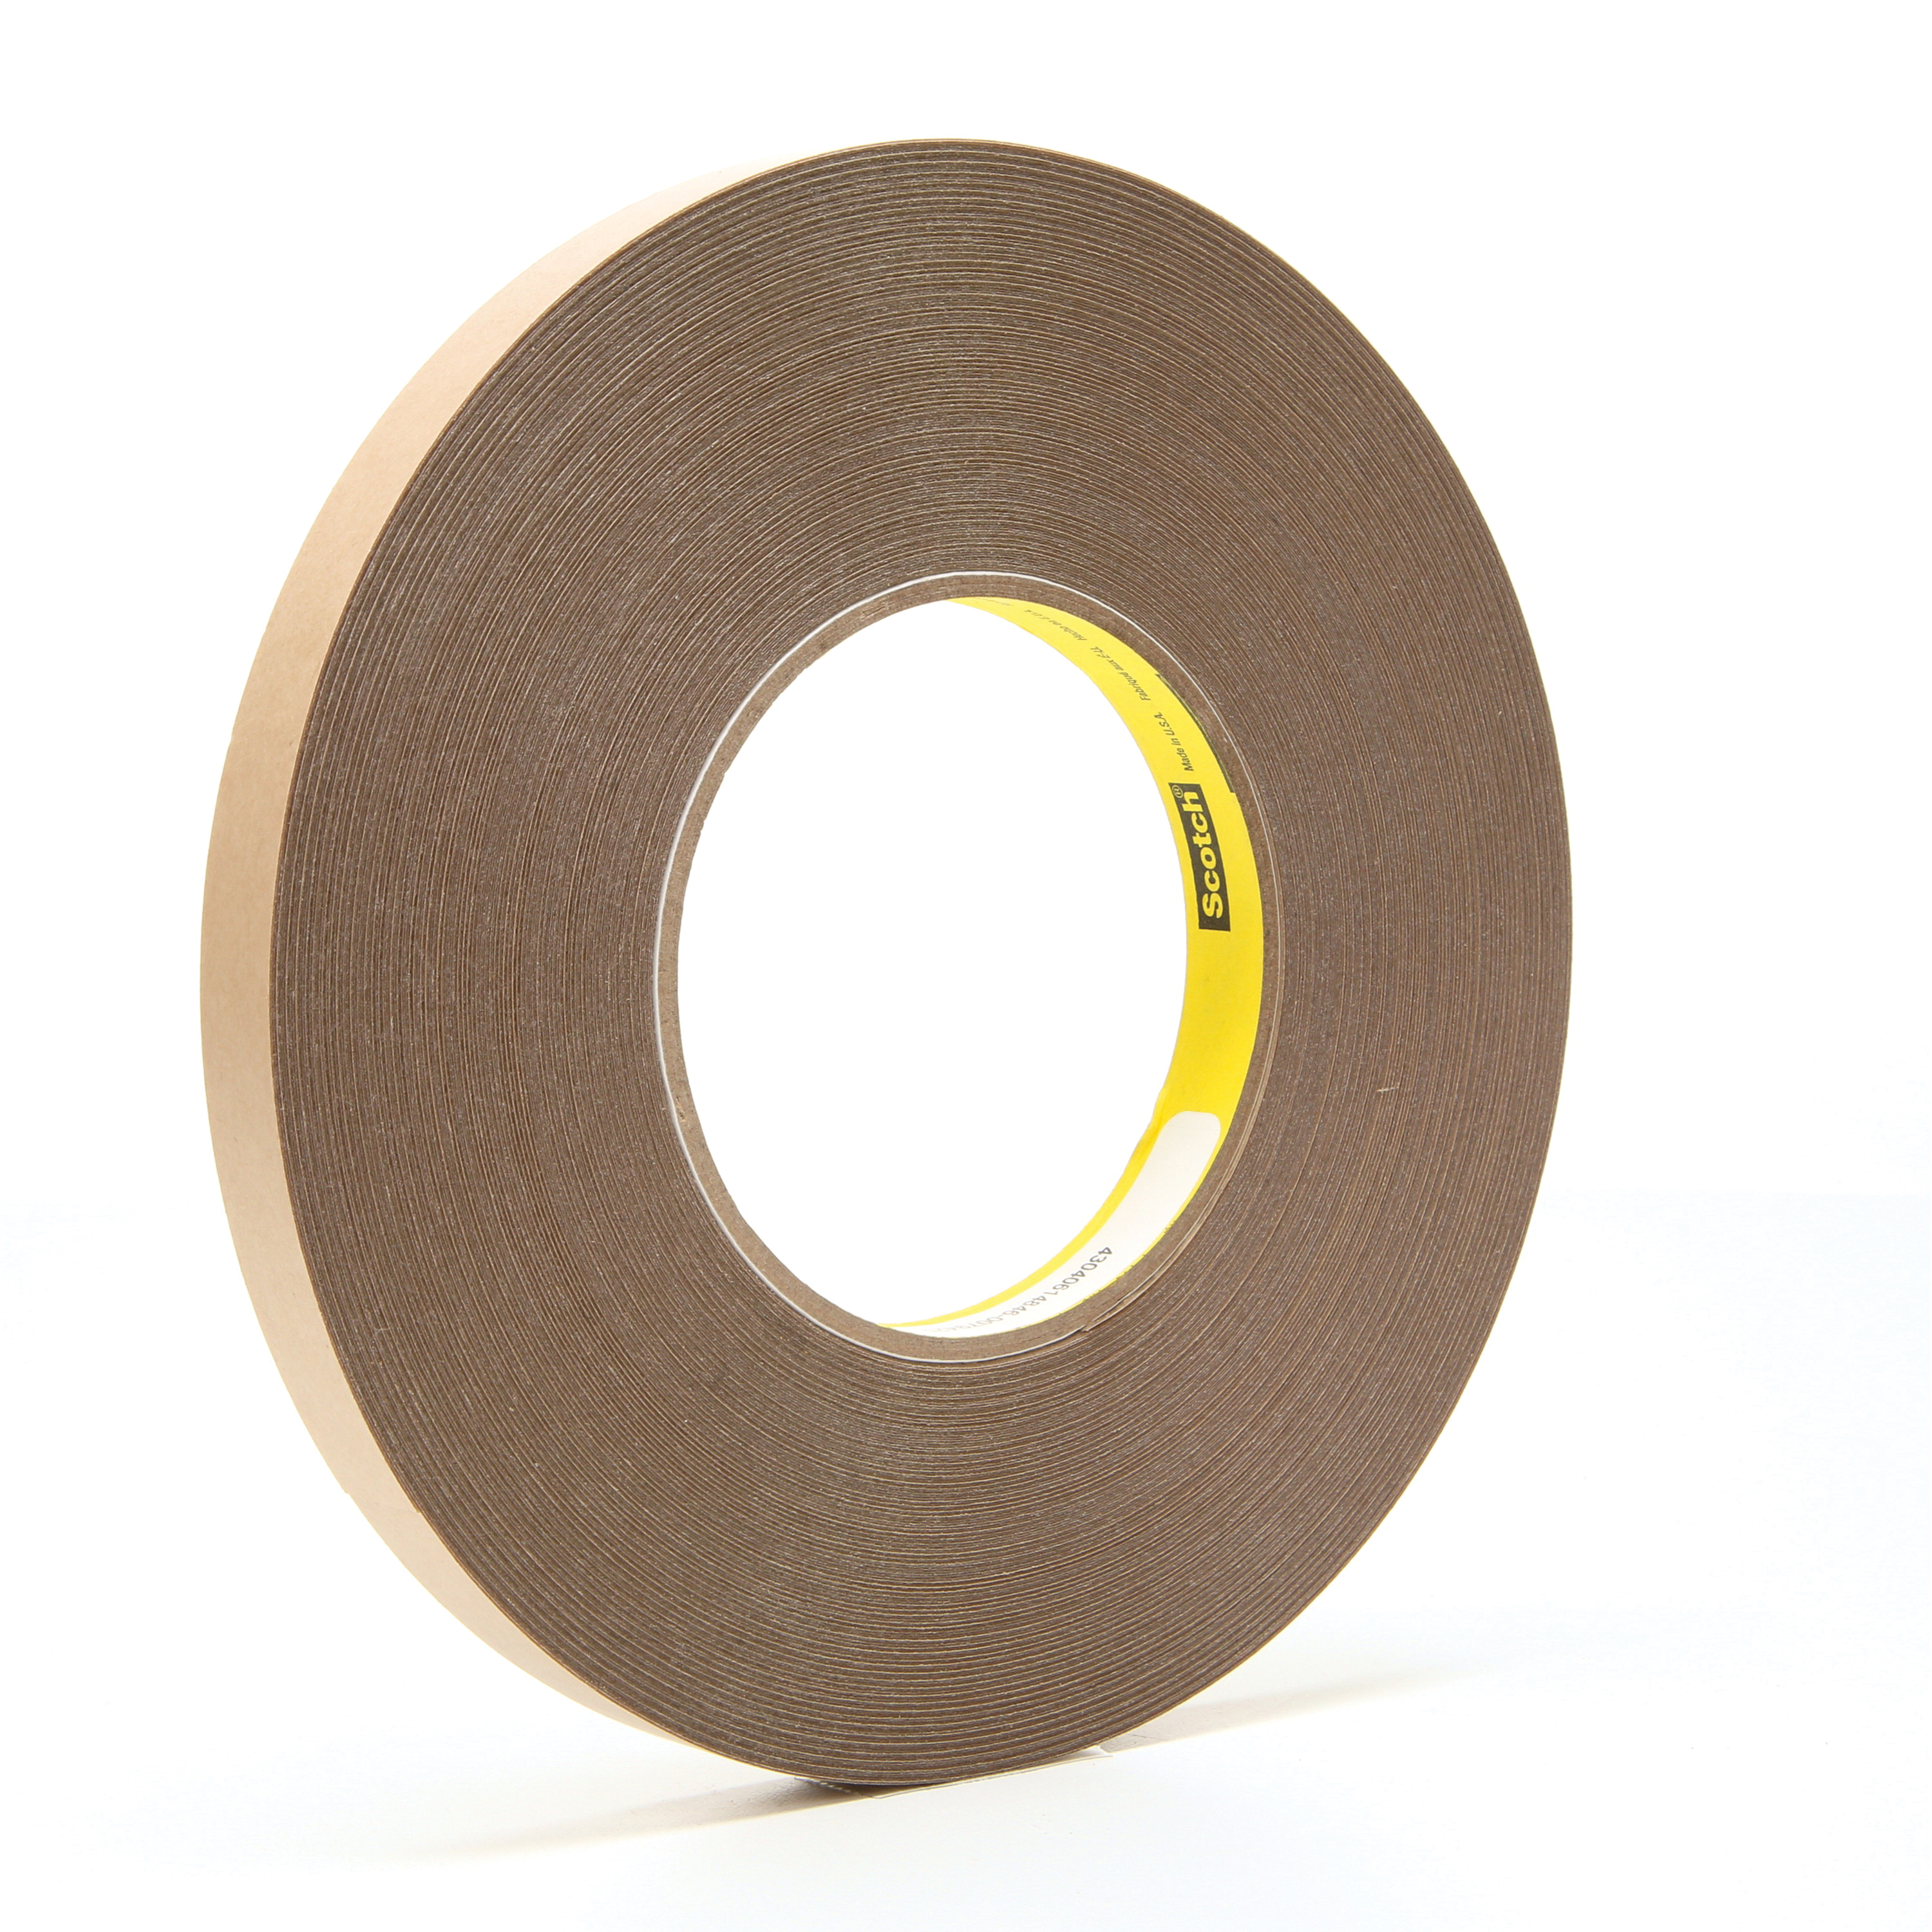 3M™ 021200-67709 Removable Double Coated Repositionable Tape, 72 yd L x 1/2 in W, 5.8 mil THK, Acrylic Adhesive, UPVC Backing, Clear